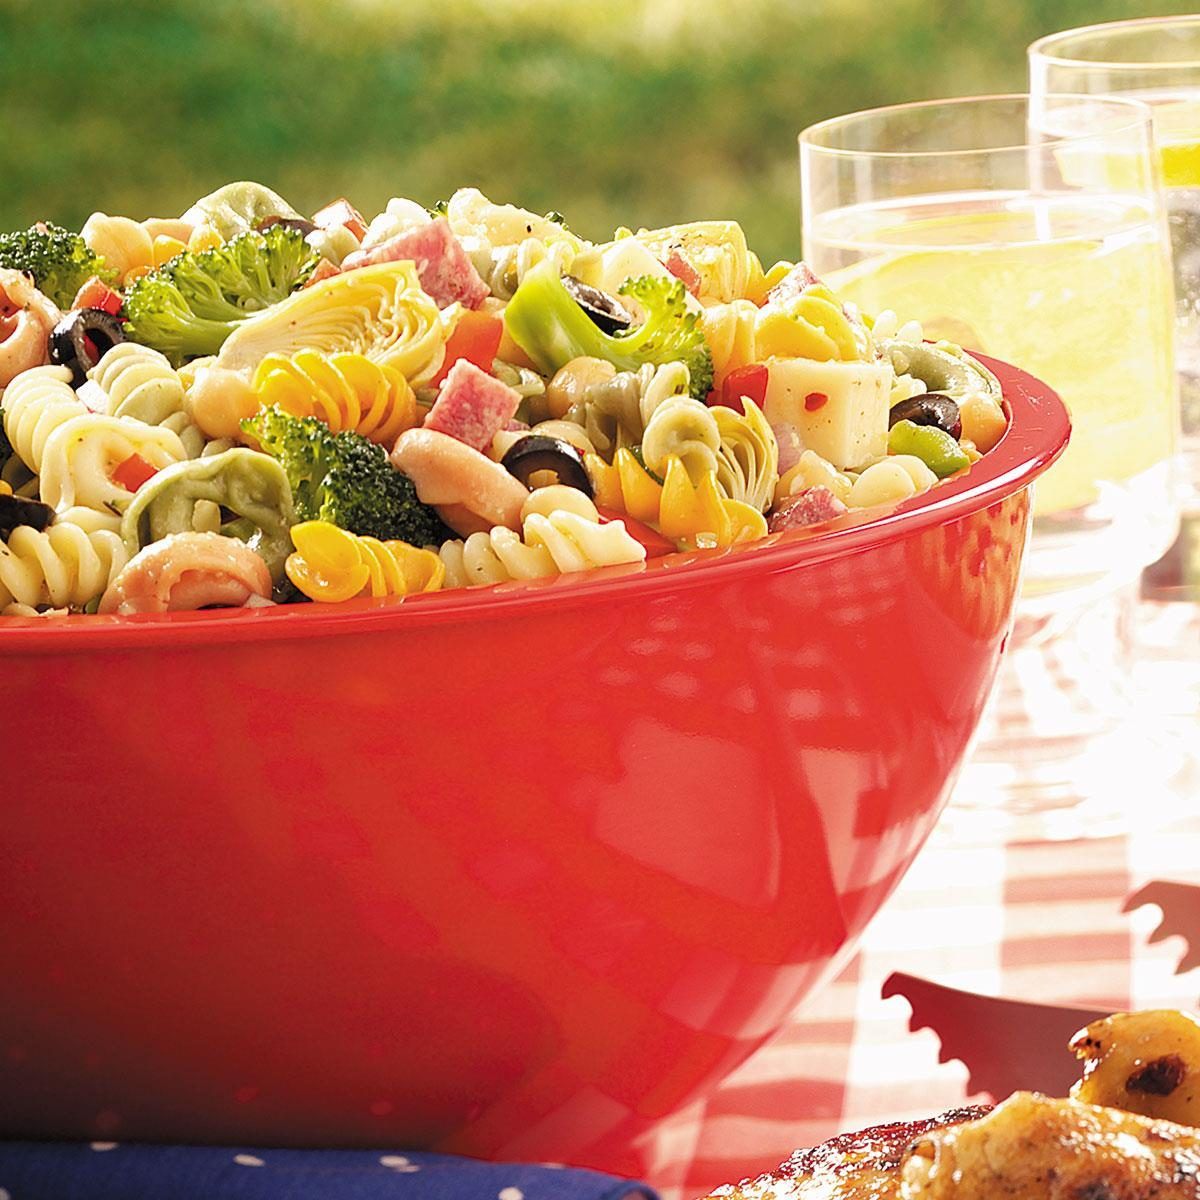 Easy Italian Desserts For A Crowd: Contest-Winning Picnic Pasta Salad Recipe